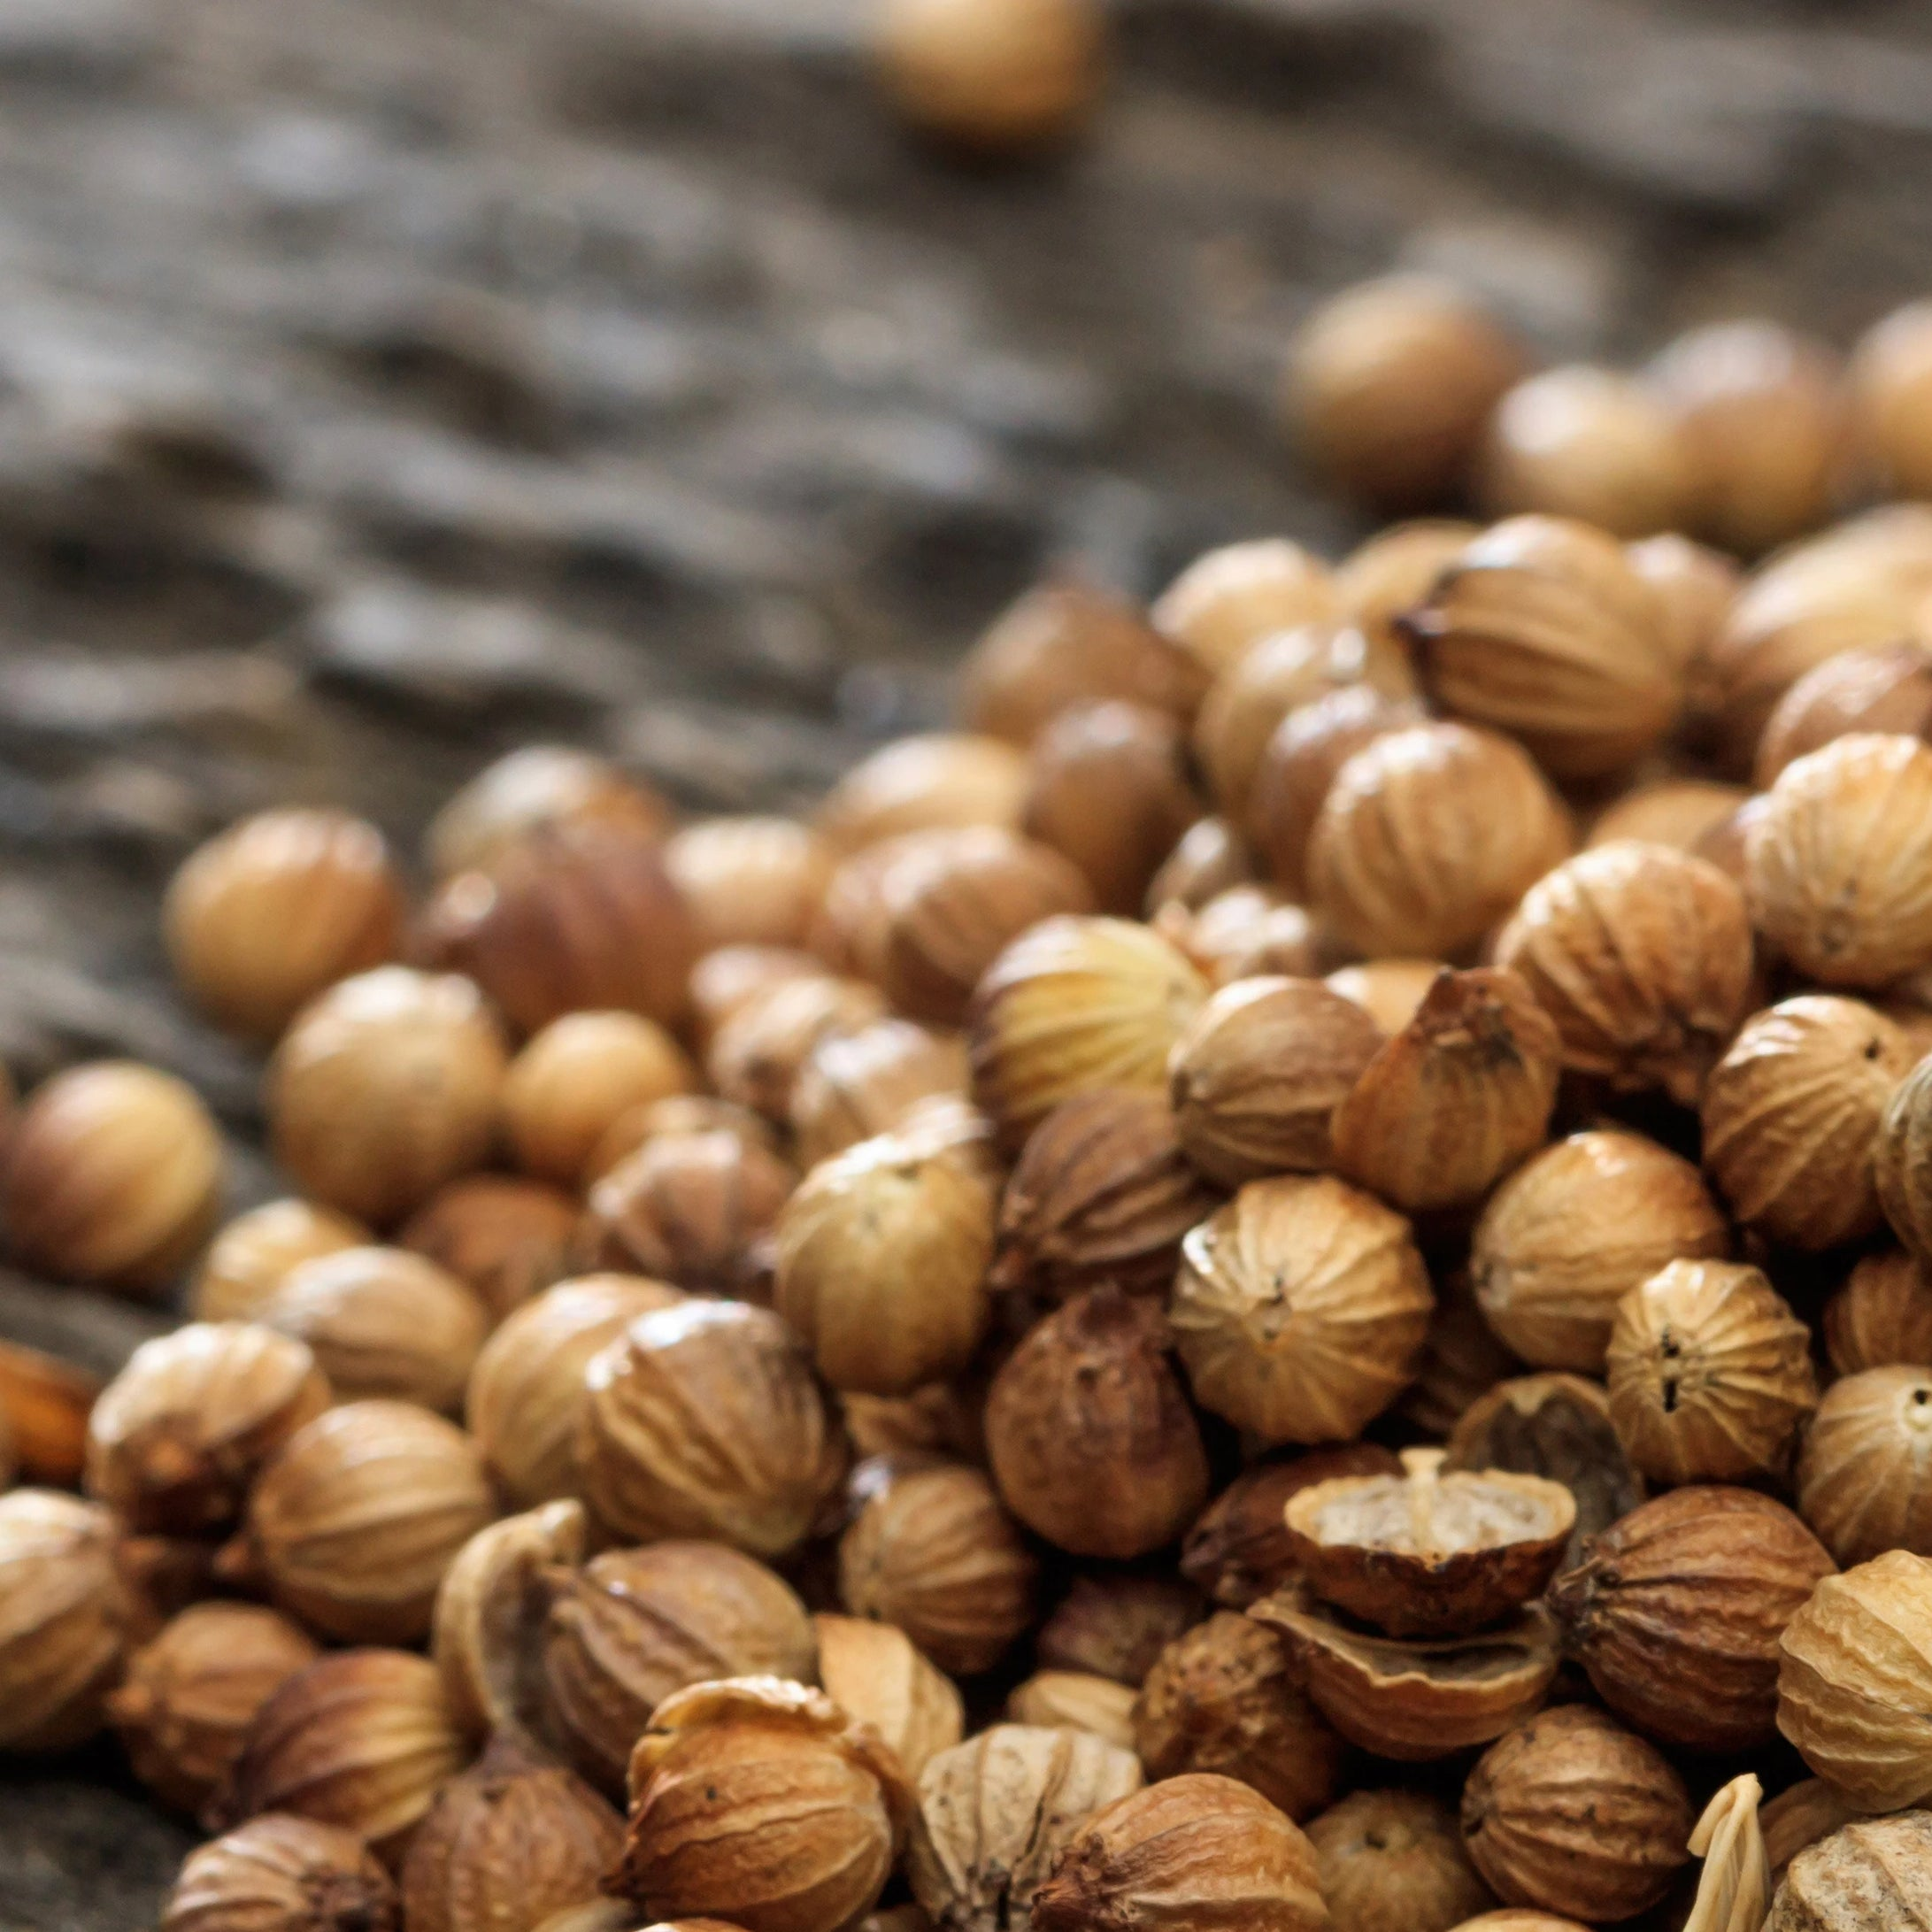 Coriander Oil used in Shaving and Other Hair Products